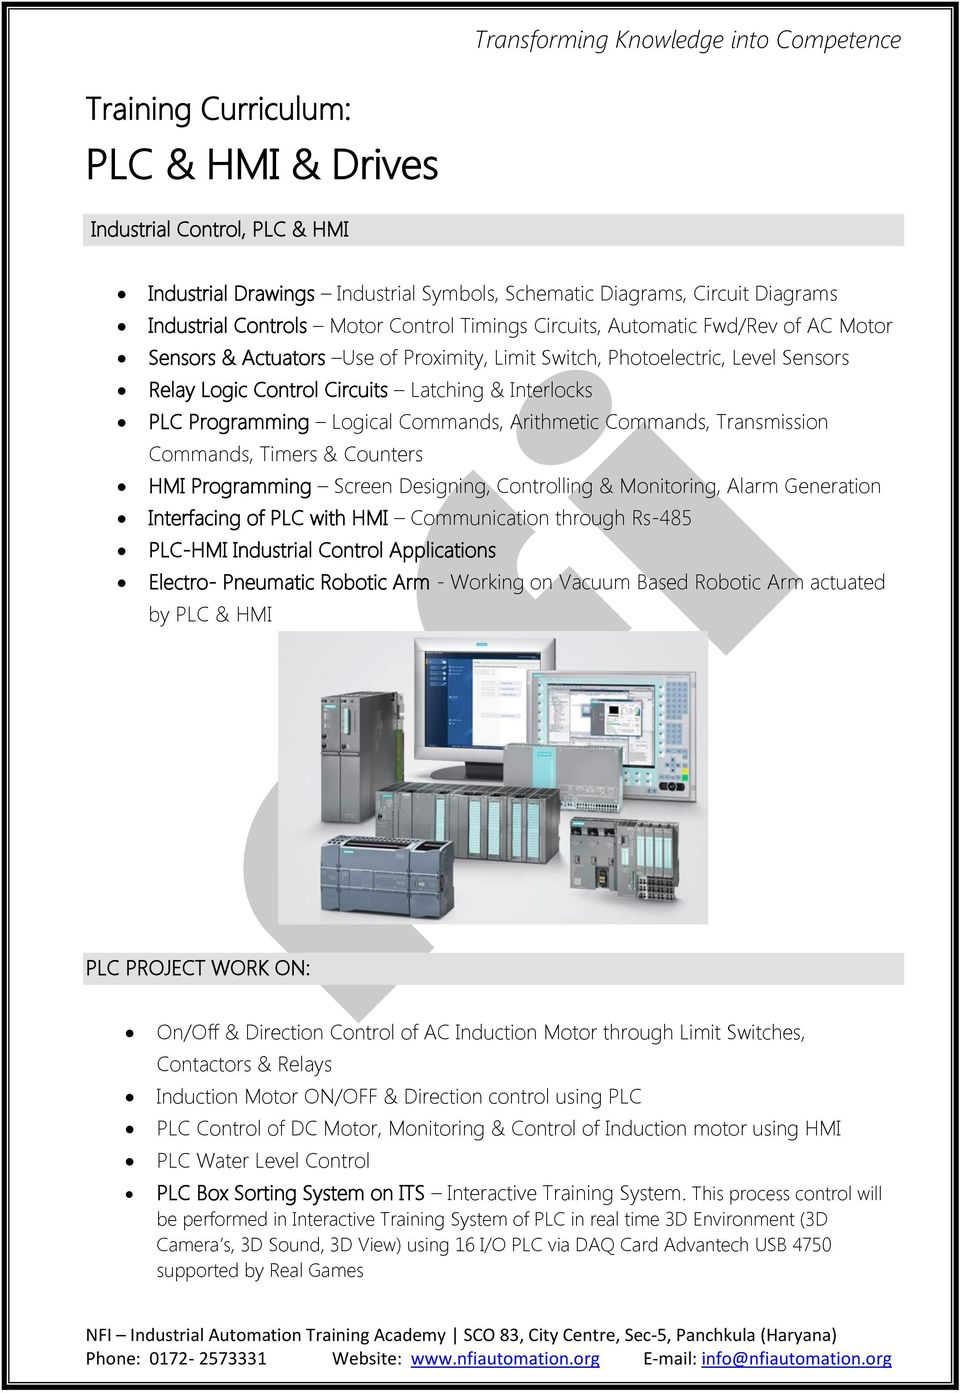 Industrial Automation Training Academy Plc Hmi Drives Dc Motor Control Using Relay Arithmetic Commands Transmission Timers Counters Programming Screen Designing Controlling